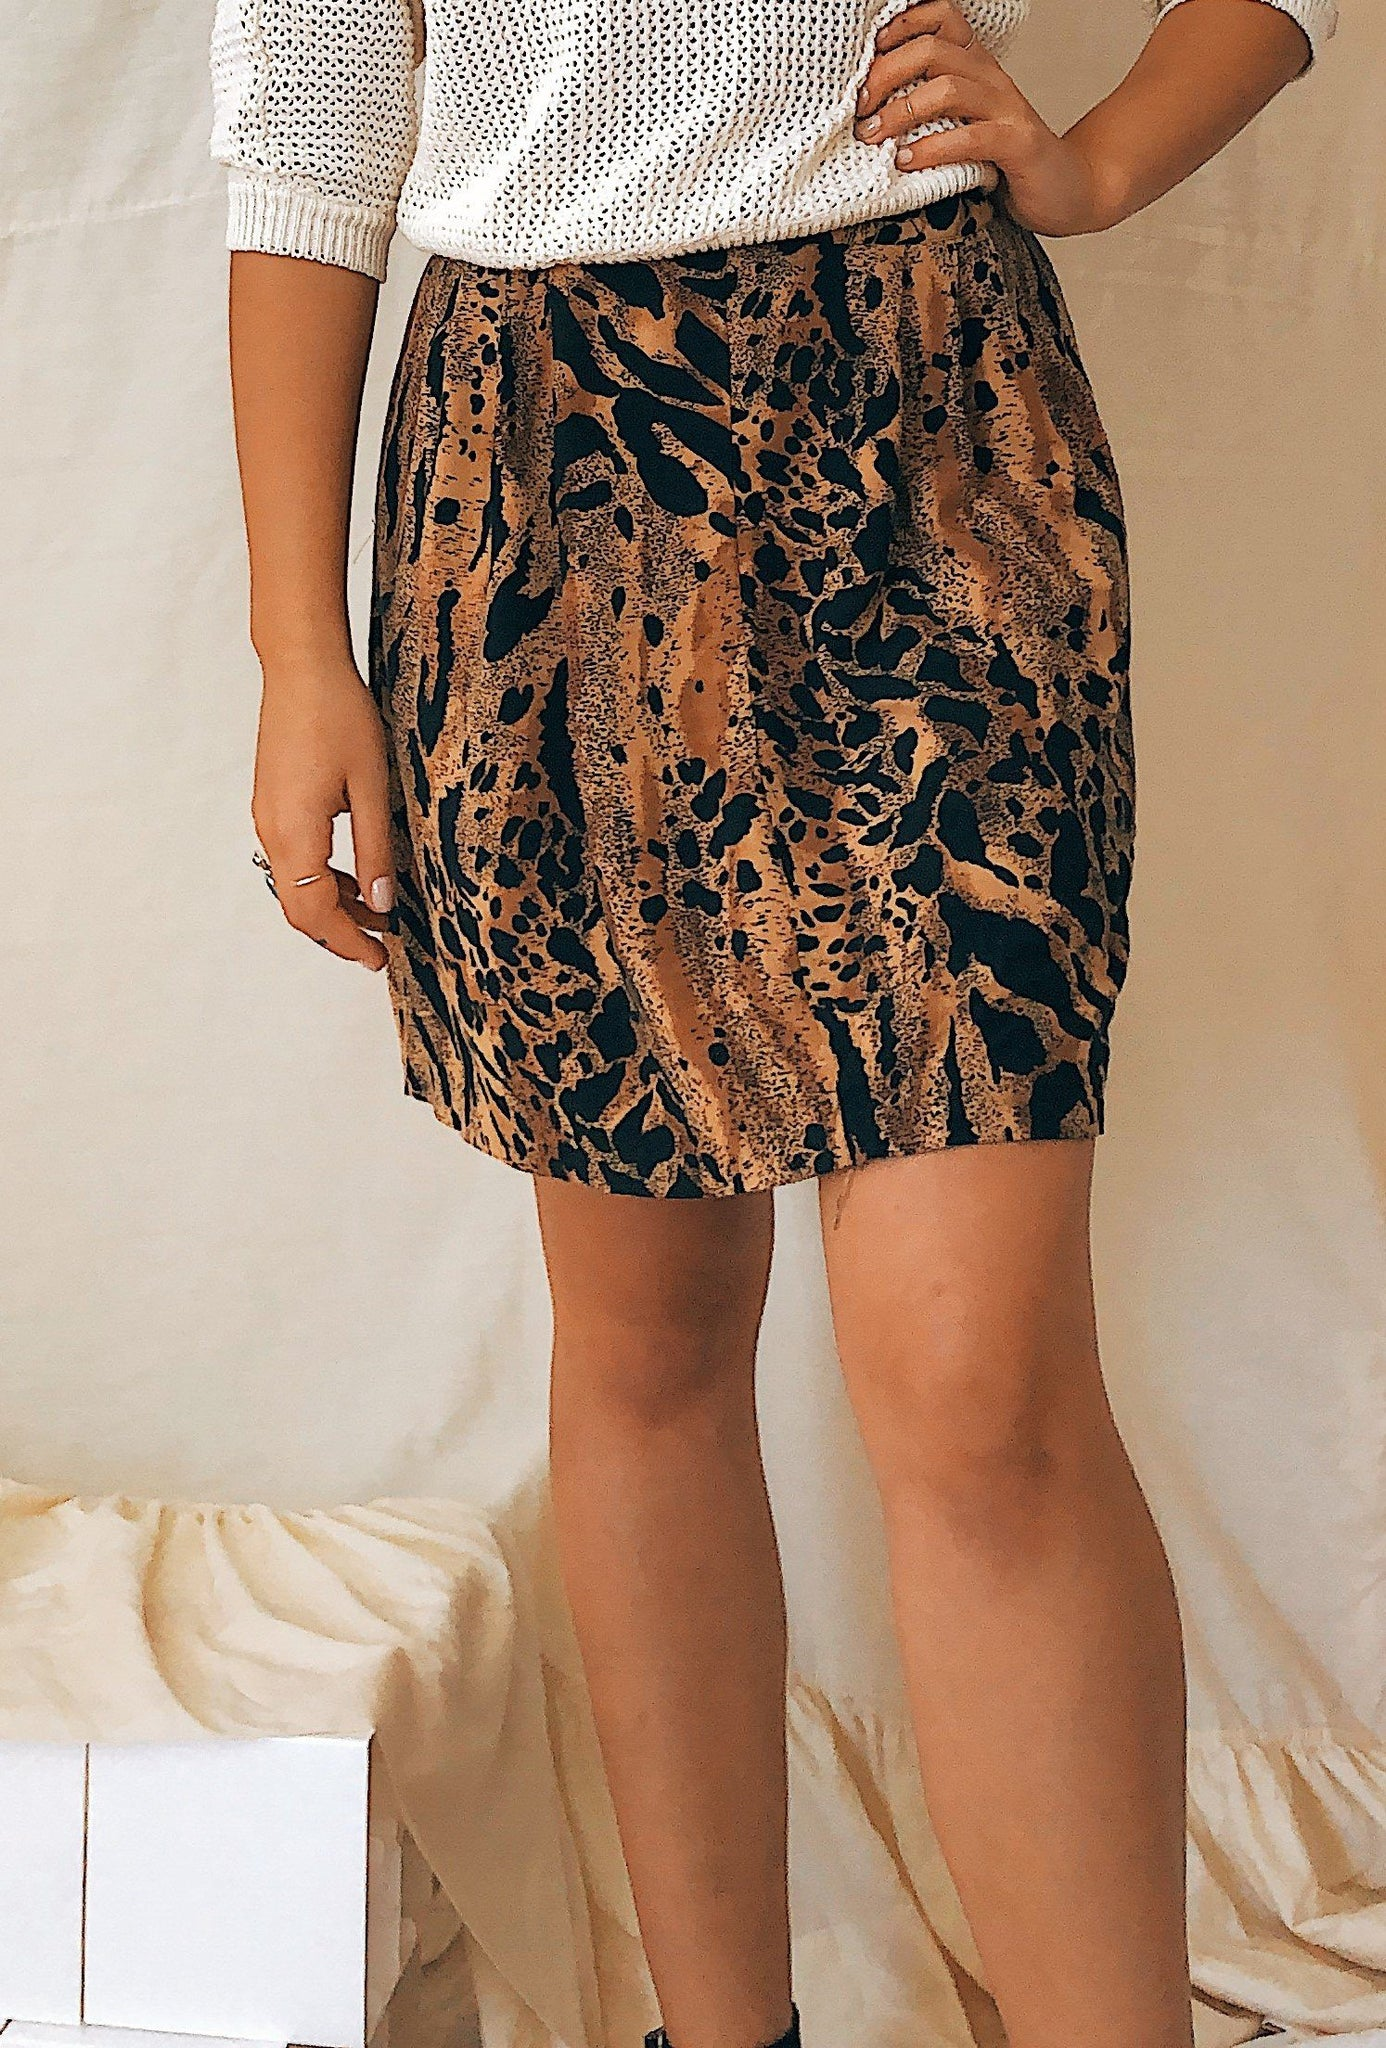 Leopard Meet Cheetah Print Skirt